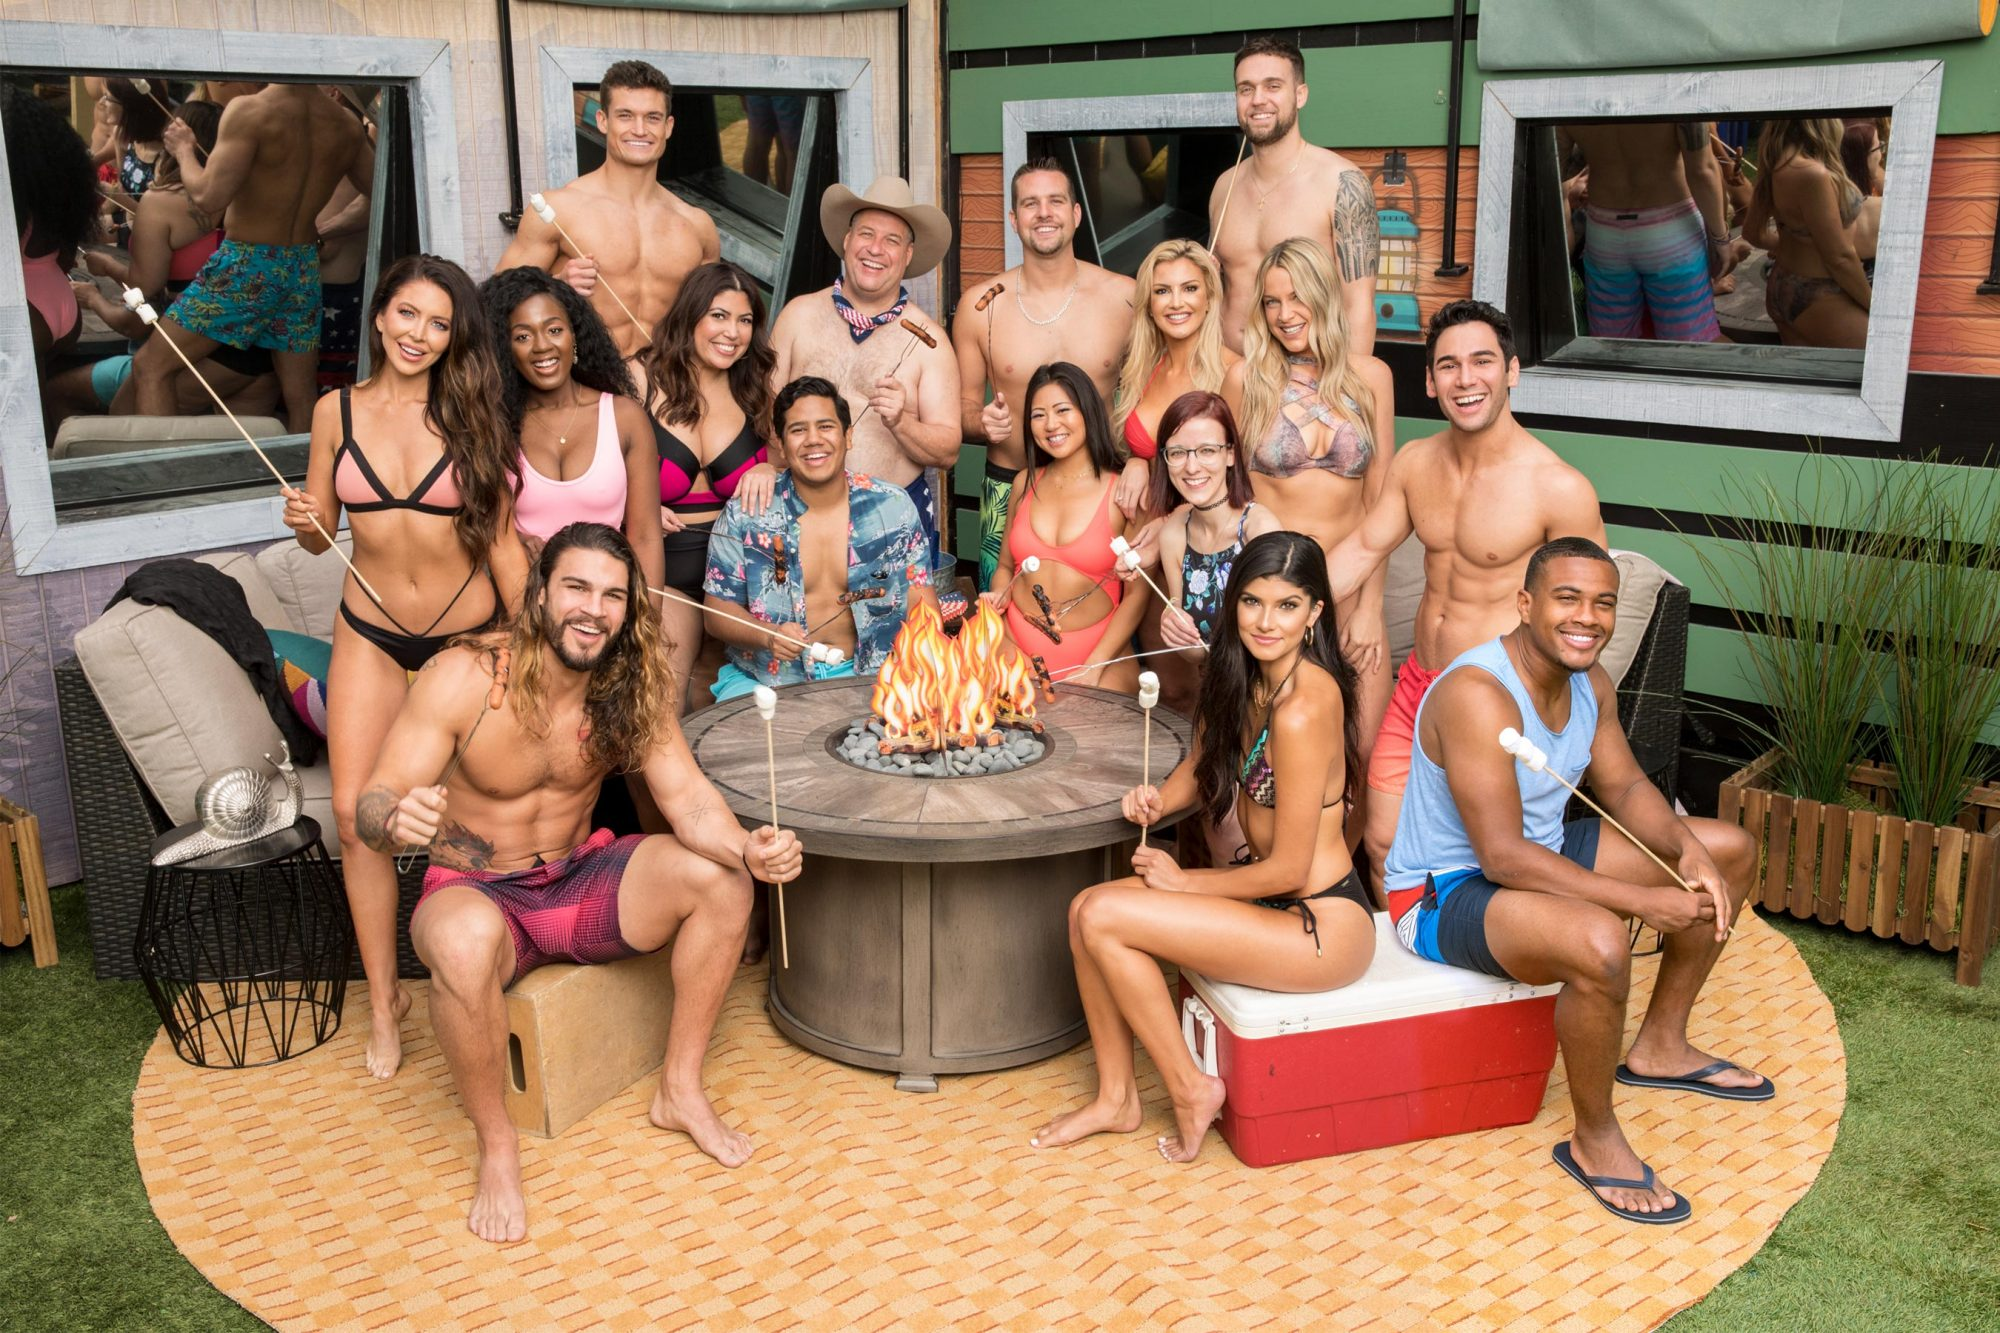 Houseguest of Big Brother 21 --L-R bottom row: Jack Matthews, Analyse Talvera, David Alexander; L-R 2nd row: Holly Alexander, Kemi Fakunle, Jessica Milagros, Ovi Kabir, Isabella Wang, Nicole Anthony, Tommy Bracco; L-R top tow: Jackson Michie, Cliff Hogg, Sam Smith, Kathryn Dunn,Christie Murphy, Nick Maccarone. BIG BROTHERÕs two-night premiere event airing Tuesday, June 25 and Wednesday, June 26 (8:00 Ð 9:00 PM, ET/PT), on the CBS Television Network. Following the two-night premiere, BIG BROTHER will be broadcast Sunday, June 30 (8:00-9:00 PM, ET/PT) and Tuesday, July 2 (8:00-9:00 PM, ET/PT). The first live eviction airs Wednesday, July 3. As of Wednesday, July 10, the show moves to its regular schedule of Wednesdays (9:00-10:00 PM, ET/PT), Thursdays, featuring the live evictions (9:00-10:00 PM, LIVE ET/Delayed PT) and Sundays (8:00-9:00 PM, ET/PT). Reserved Photo: Monty Brinton/CBS ©2018 CBS Broadcasting, Inc. All Rights Reserved